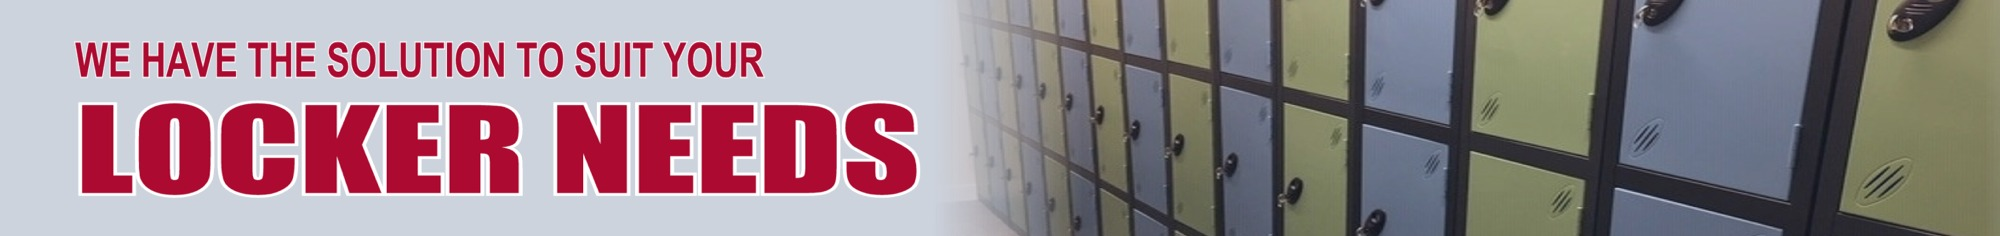 lOCKER SOLUTIONS TO SUIT EVERY ENVIRONMENT, METAL, PLASTIC, LAMINATE, SGL, ALUMINIUM, WOOD, WIRE MESH